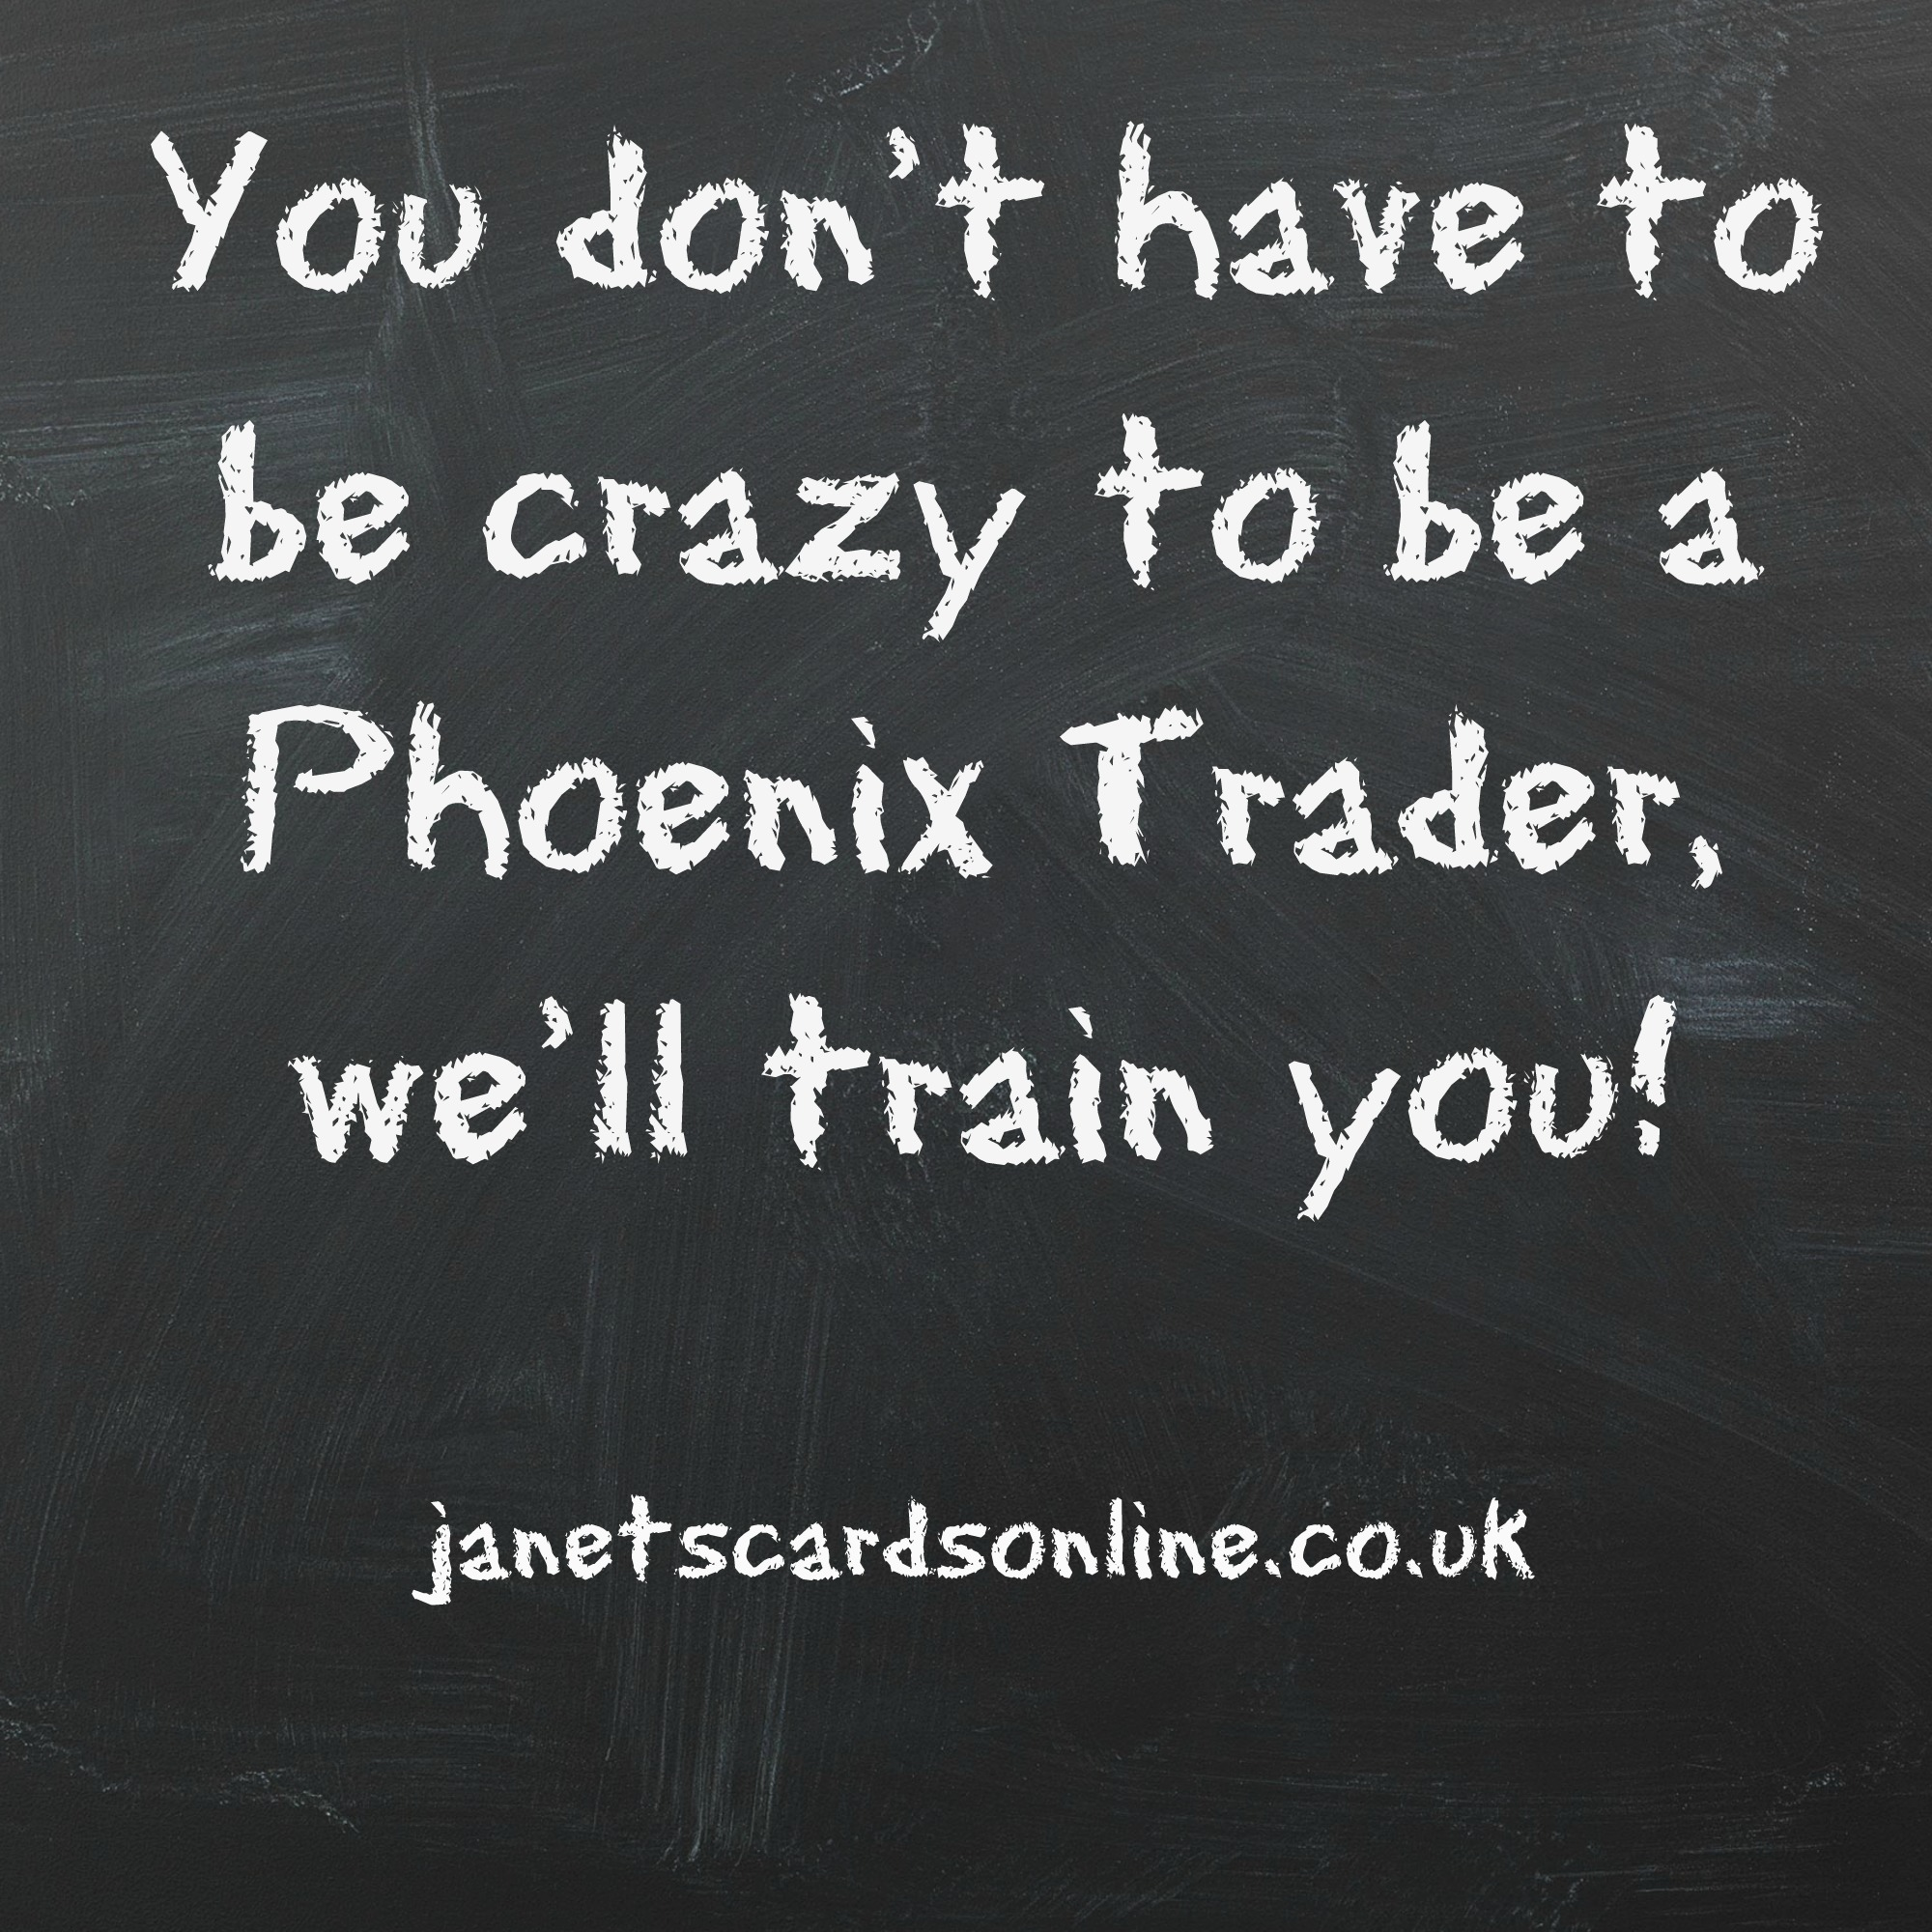 Phoenix Trading training and support provided